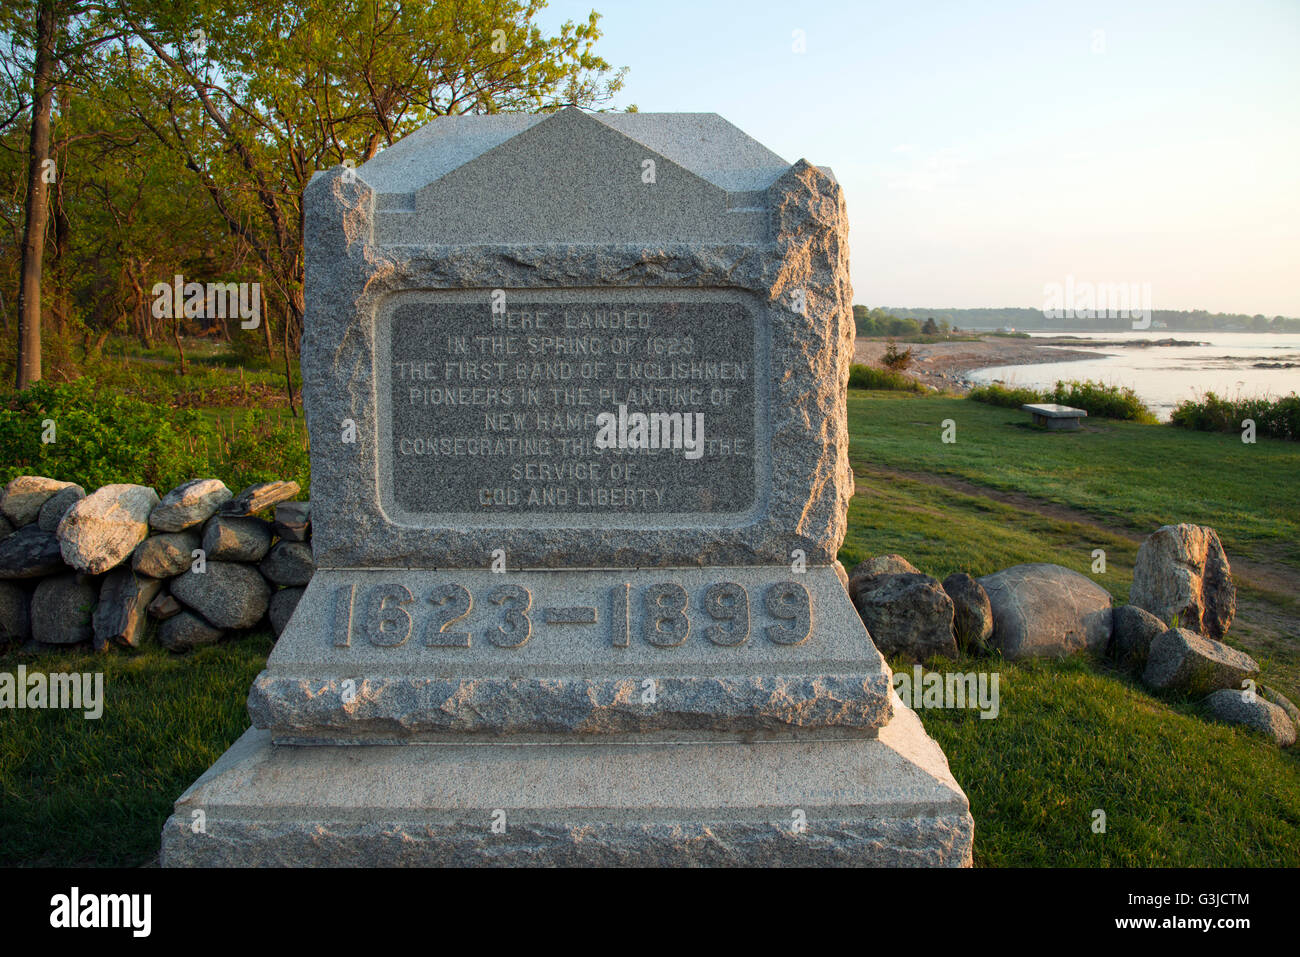 Odiorne Point State Park in Rye, NH, site of first European settlement on New Hampshire seacoast - Stock Image